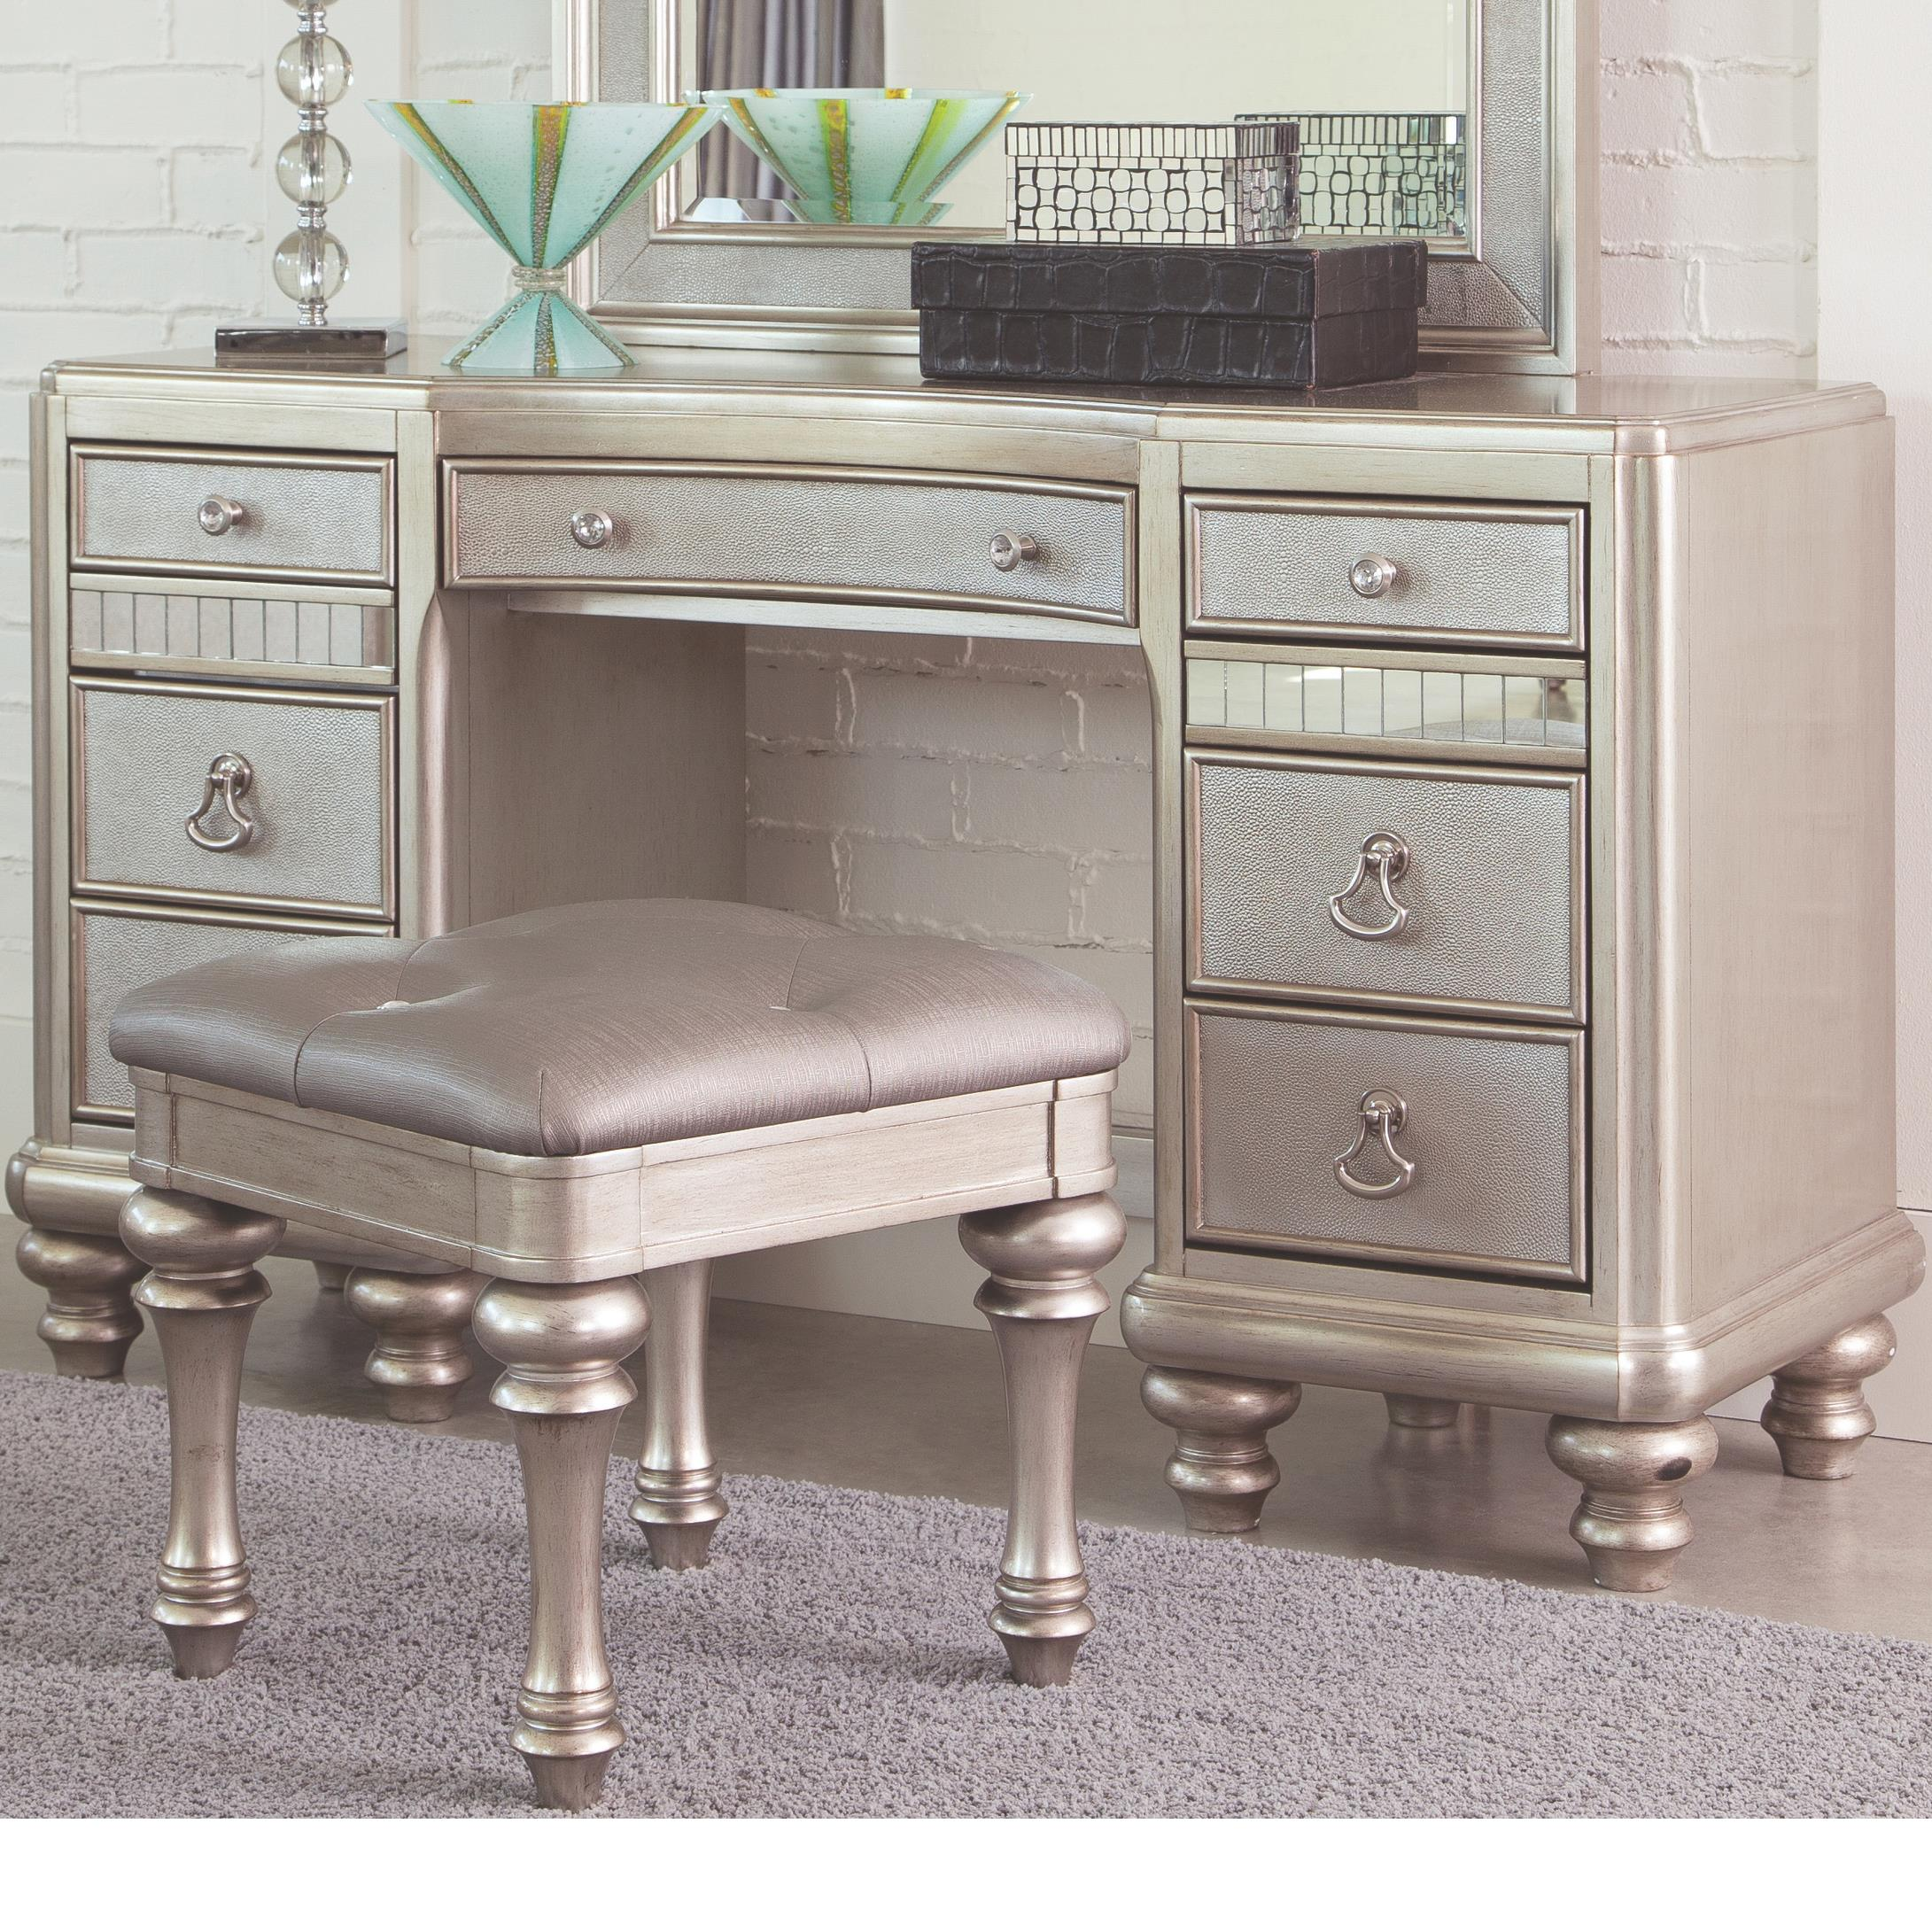 Keep everything from Towels to Hair Dryers in with one of our Bathroom Vanities. Ashley Furniture HomeStore has Free Shipping on many items!